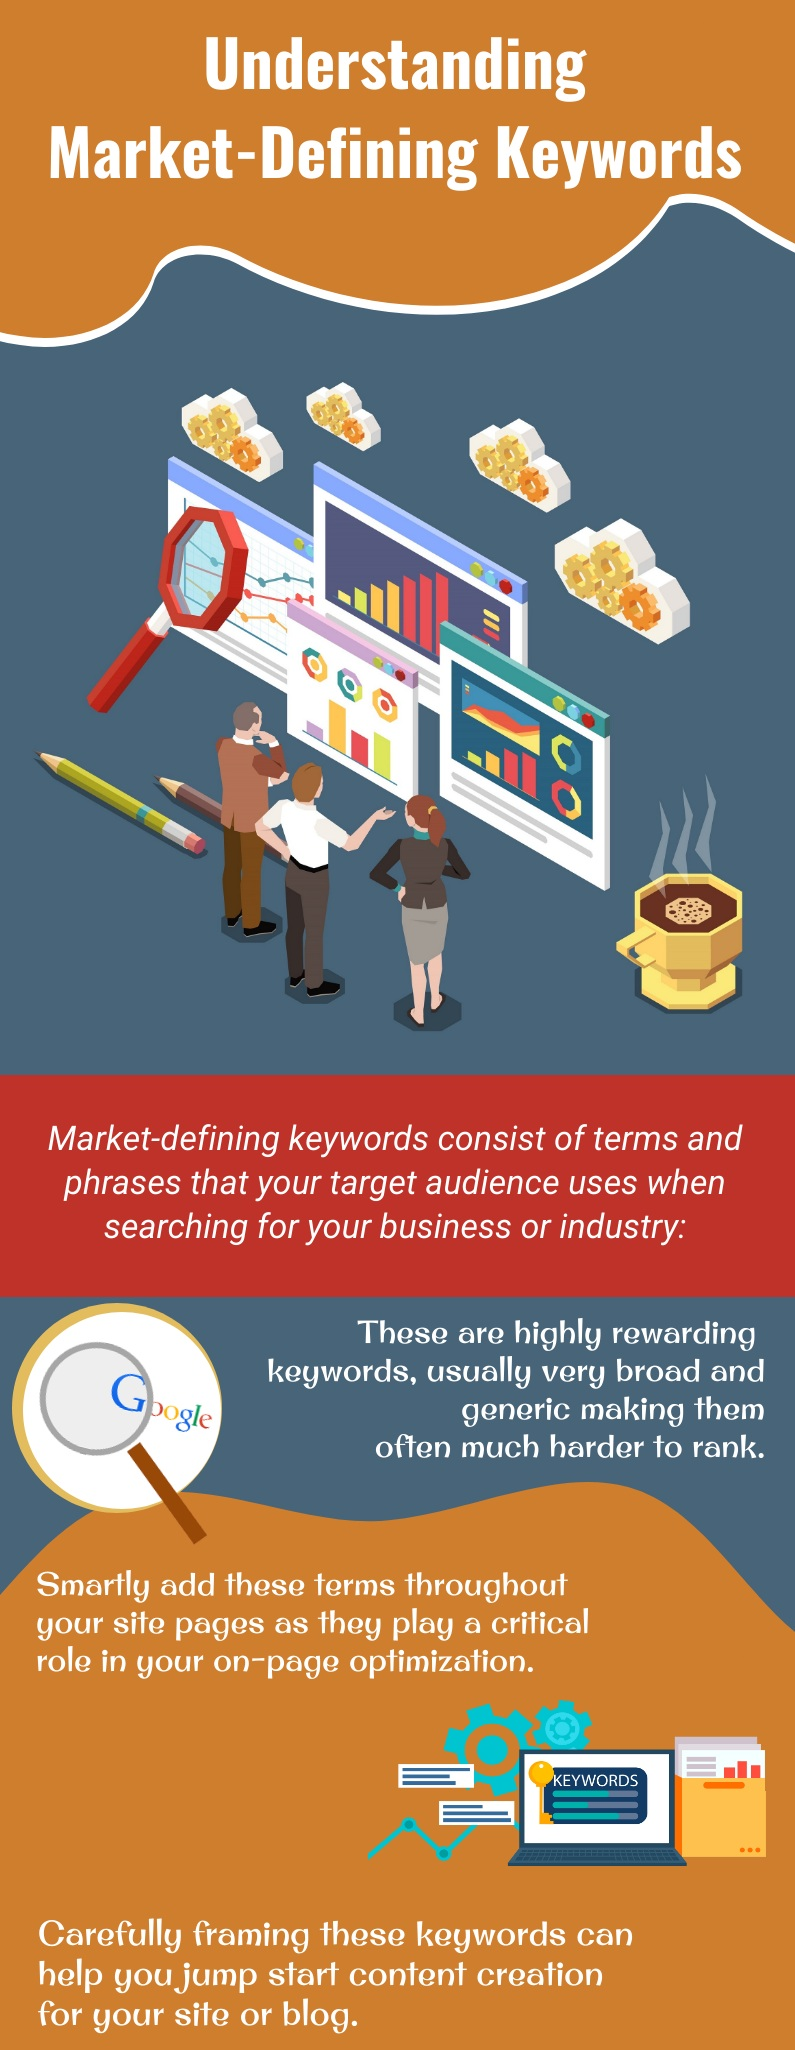 Understanding-Market-Defining-Keywords